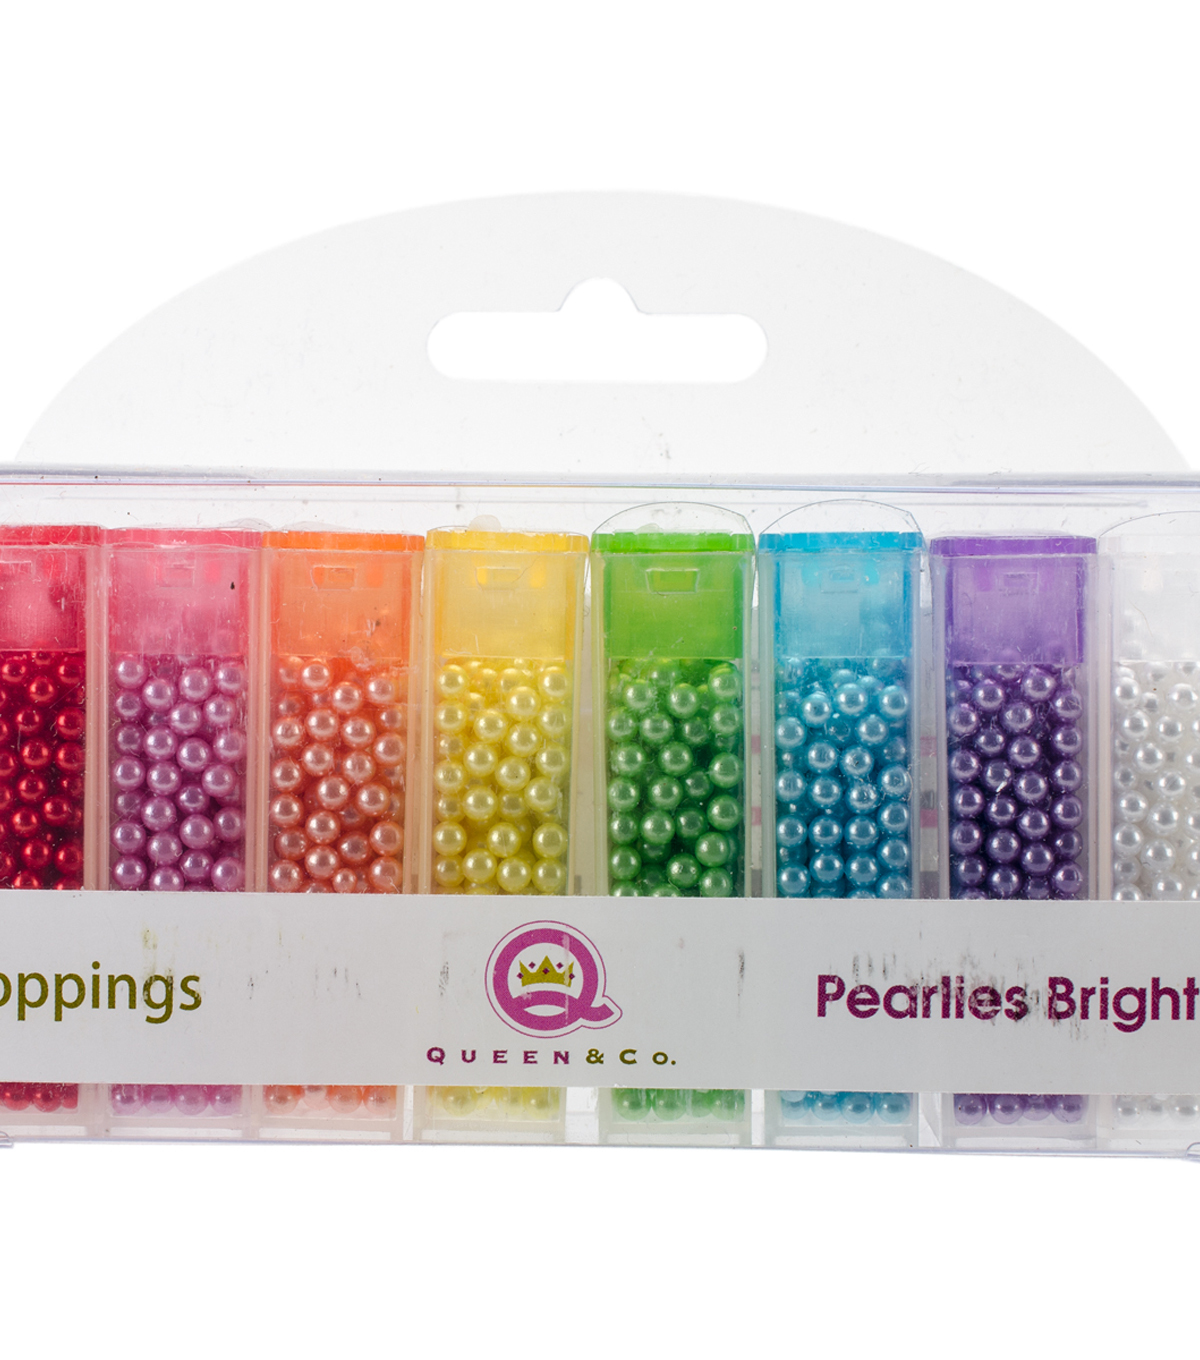 Queen & Co Topping Set-Pearlies Bright